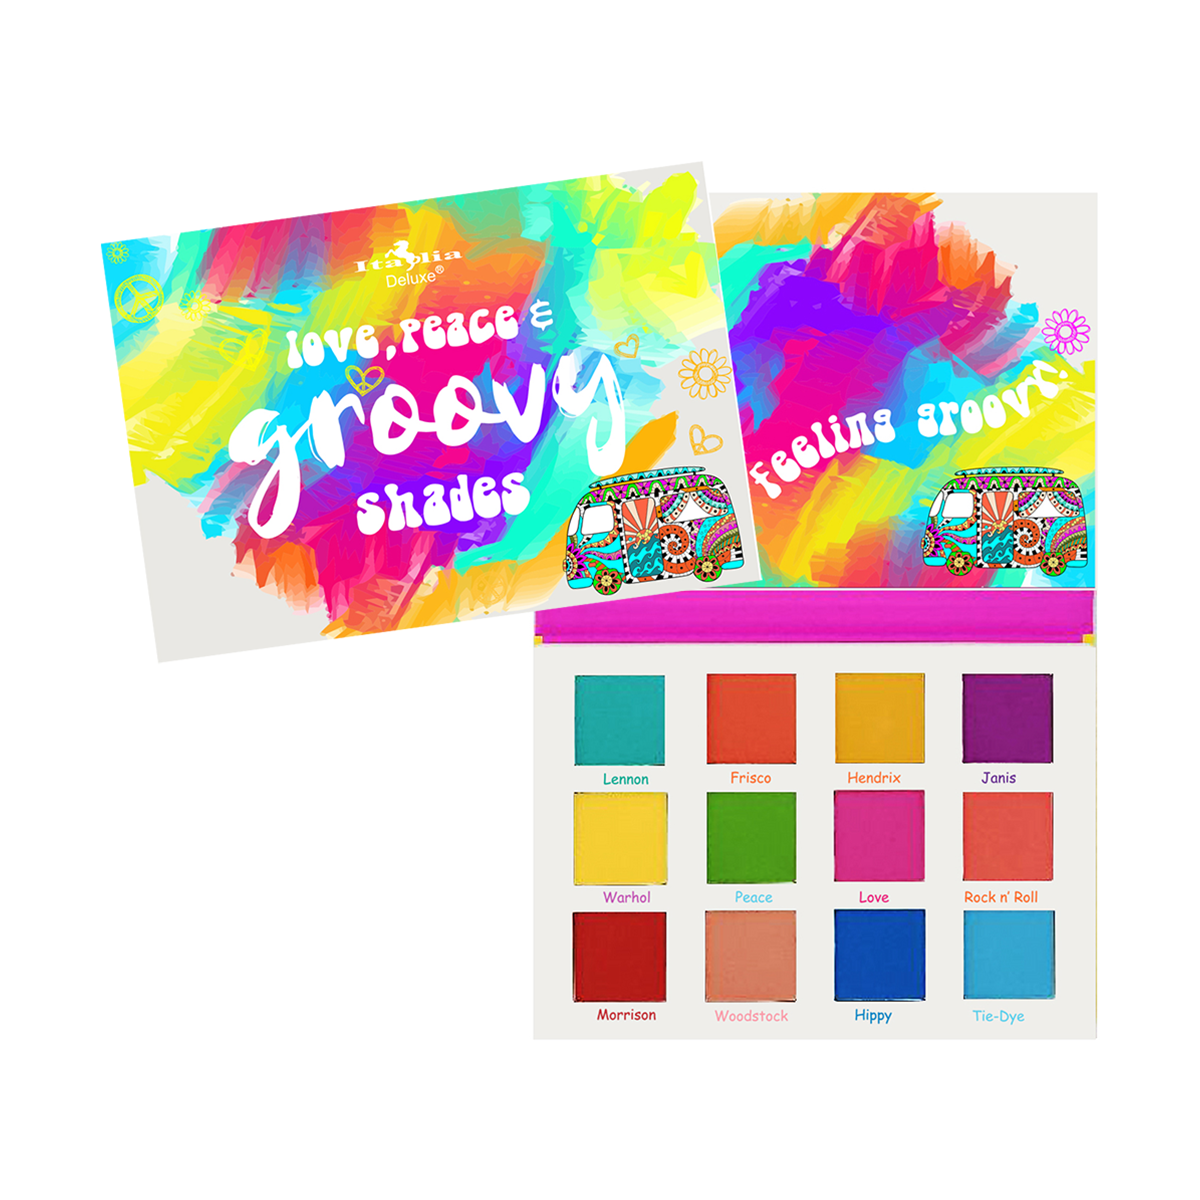 Love, Peace & Groovy Palette